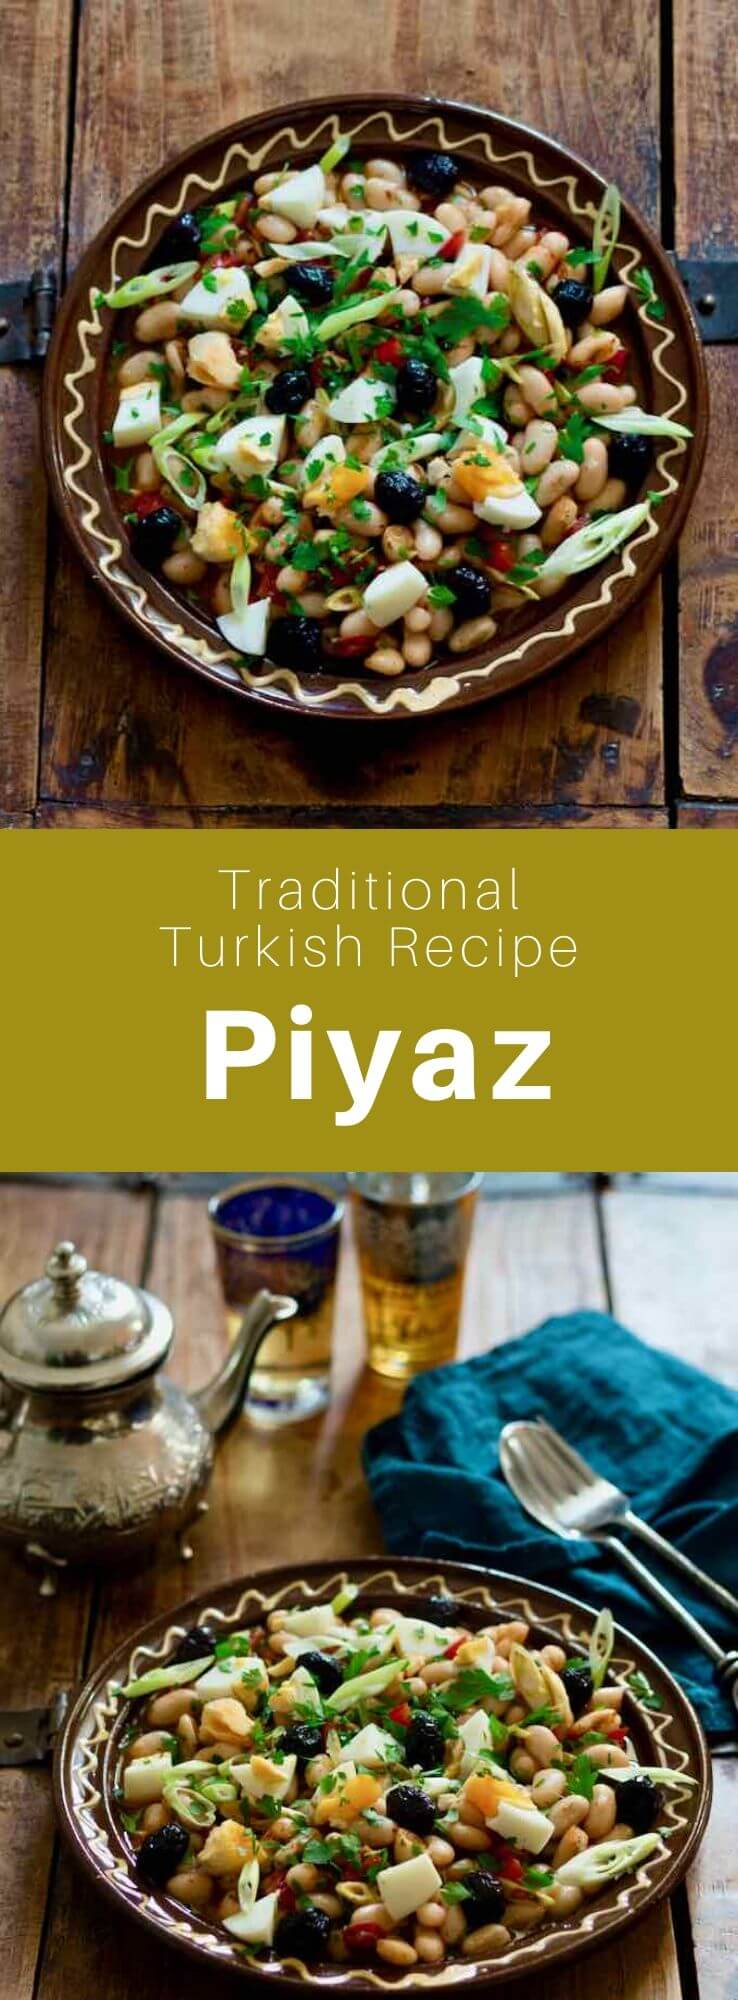 Piyaz is one of the main mezes in Turkish cuisine. It is a salad that is prepared with white beans, onion, spices and herbs. #Turkey #Turkish #TurkishRecipe #TurkishFood #TurkishCuisine #WorldCuisine #196flavors